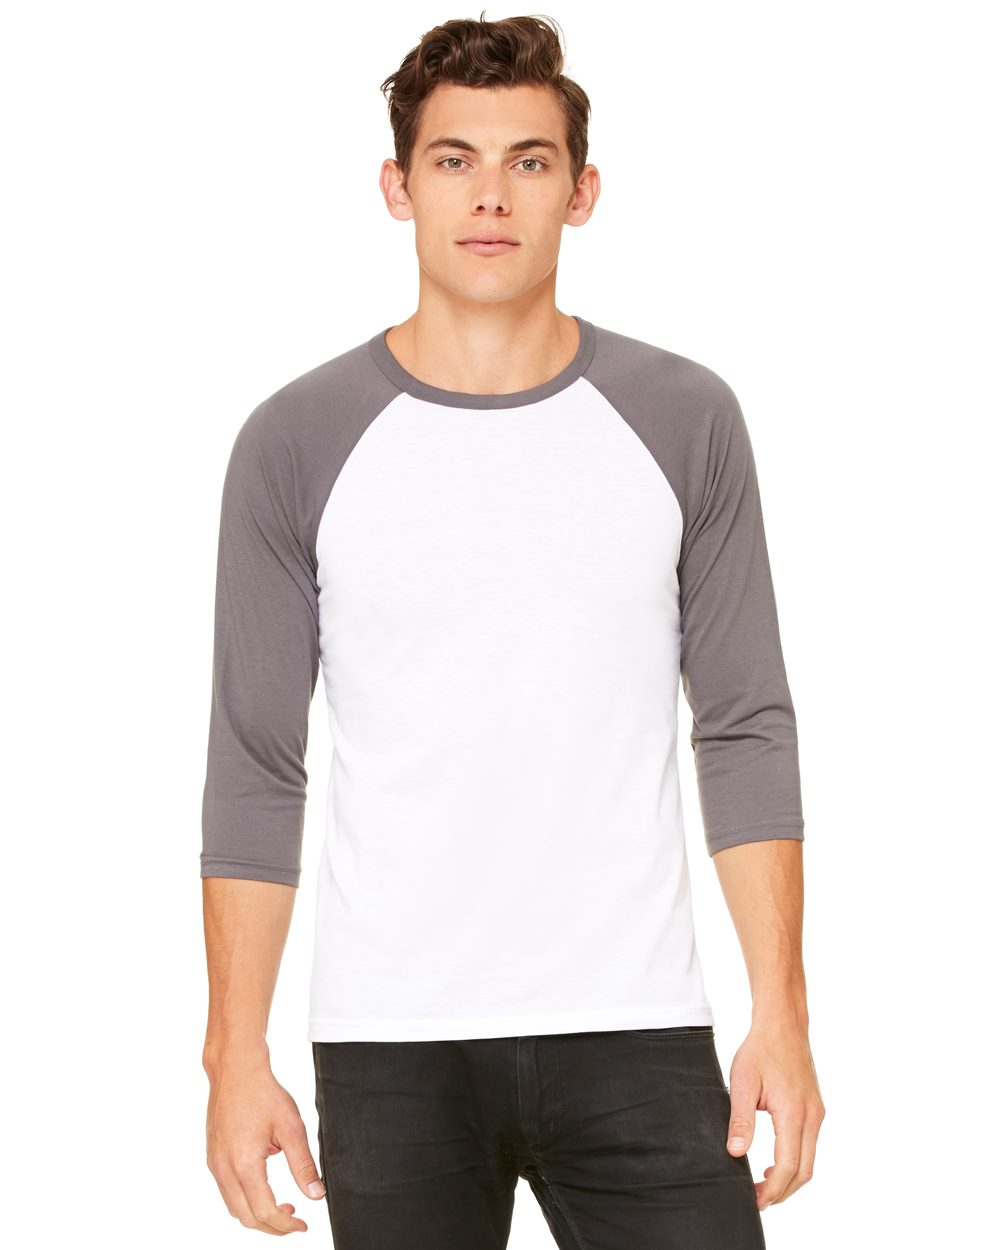 Canvas 3200 - Unisex Three-Quarter Sleeve Baseball Raglan